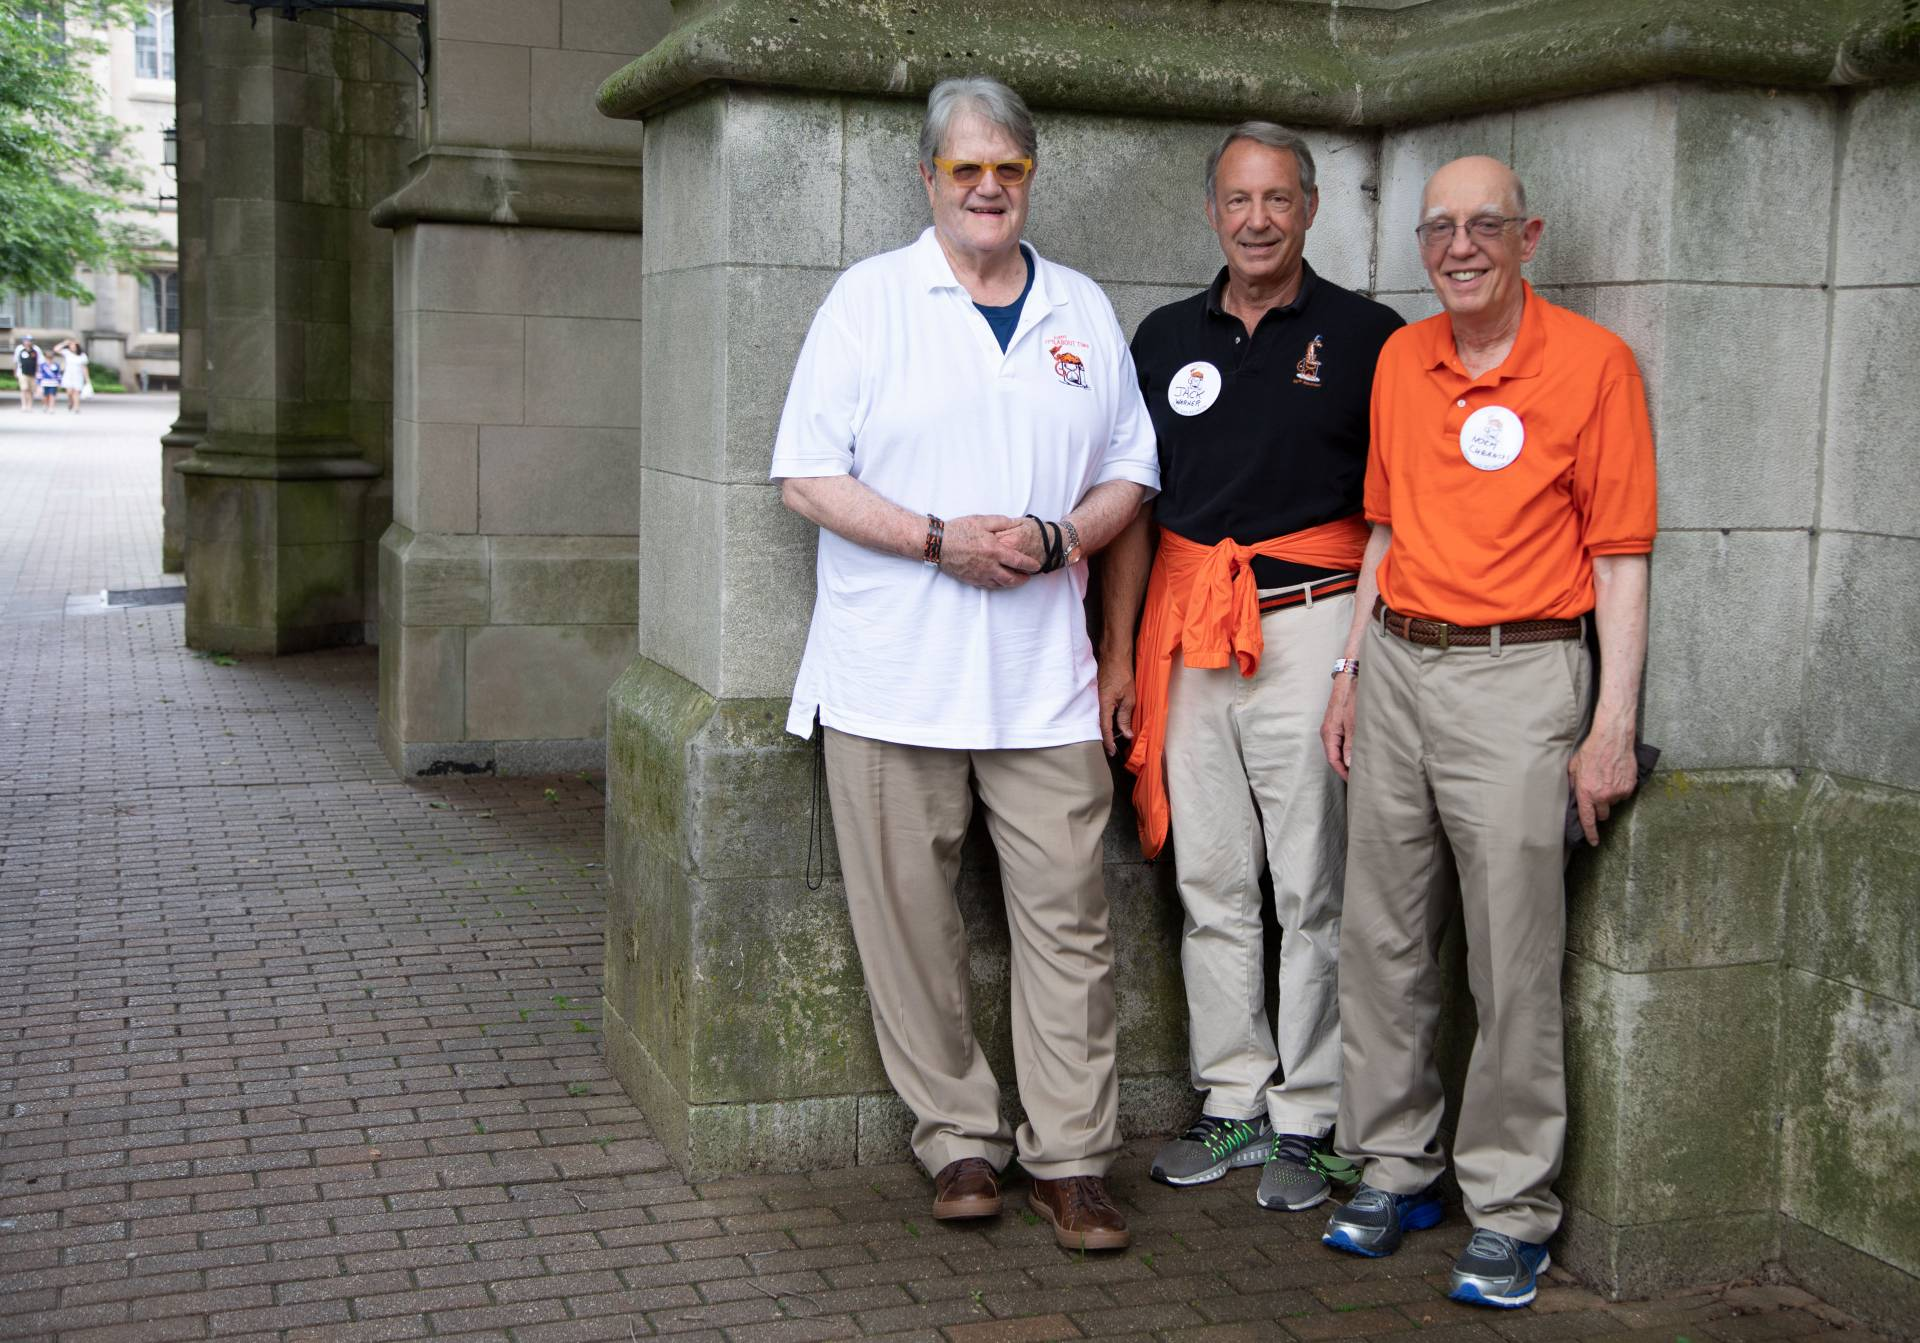 Ed Cadman '68, Jack Warner '68 and Norm Cubanski '68 standing outside McCosh